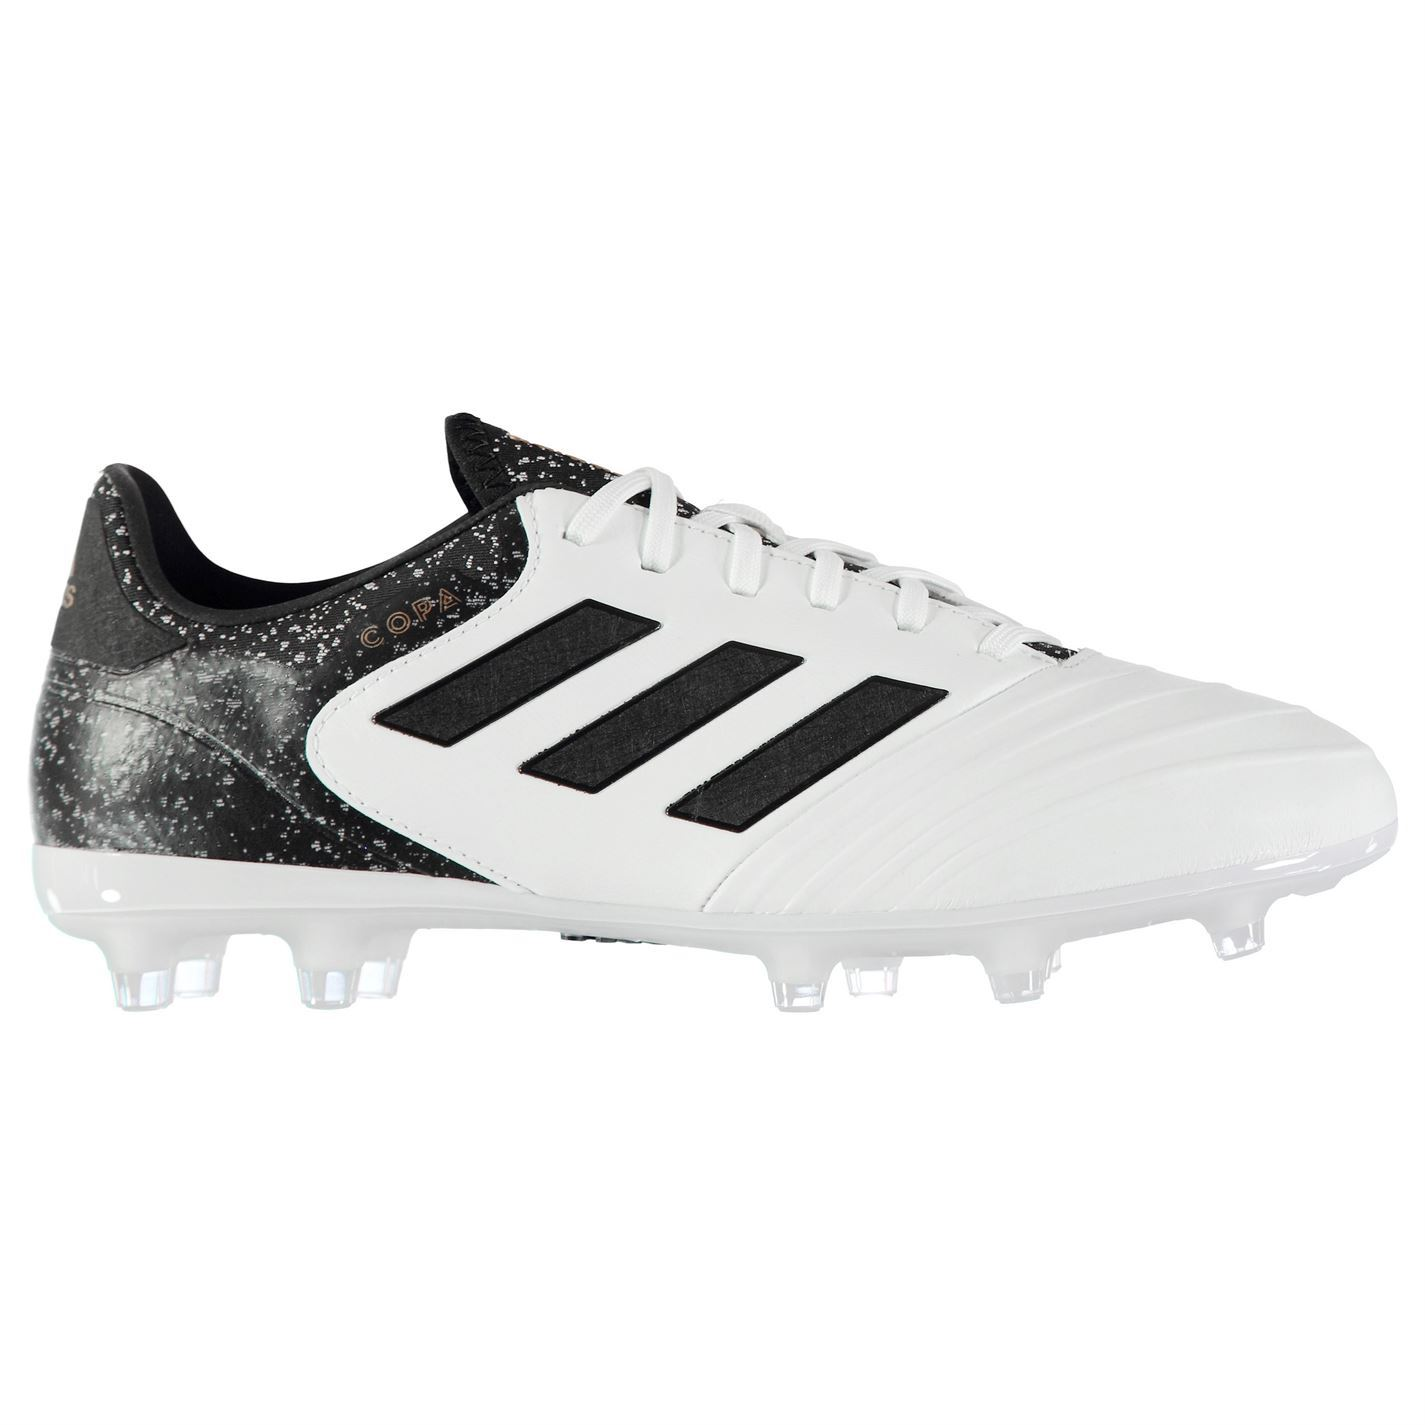 adidas Copa 18.2 Firm Ground Football Boots Mens White Black Gold Soccer  Cleats b53186da8d1